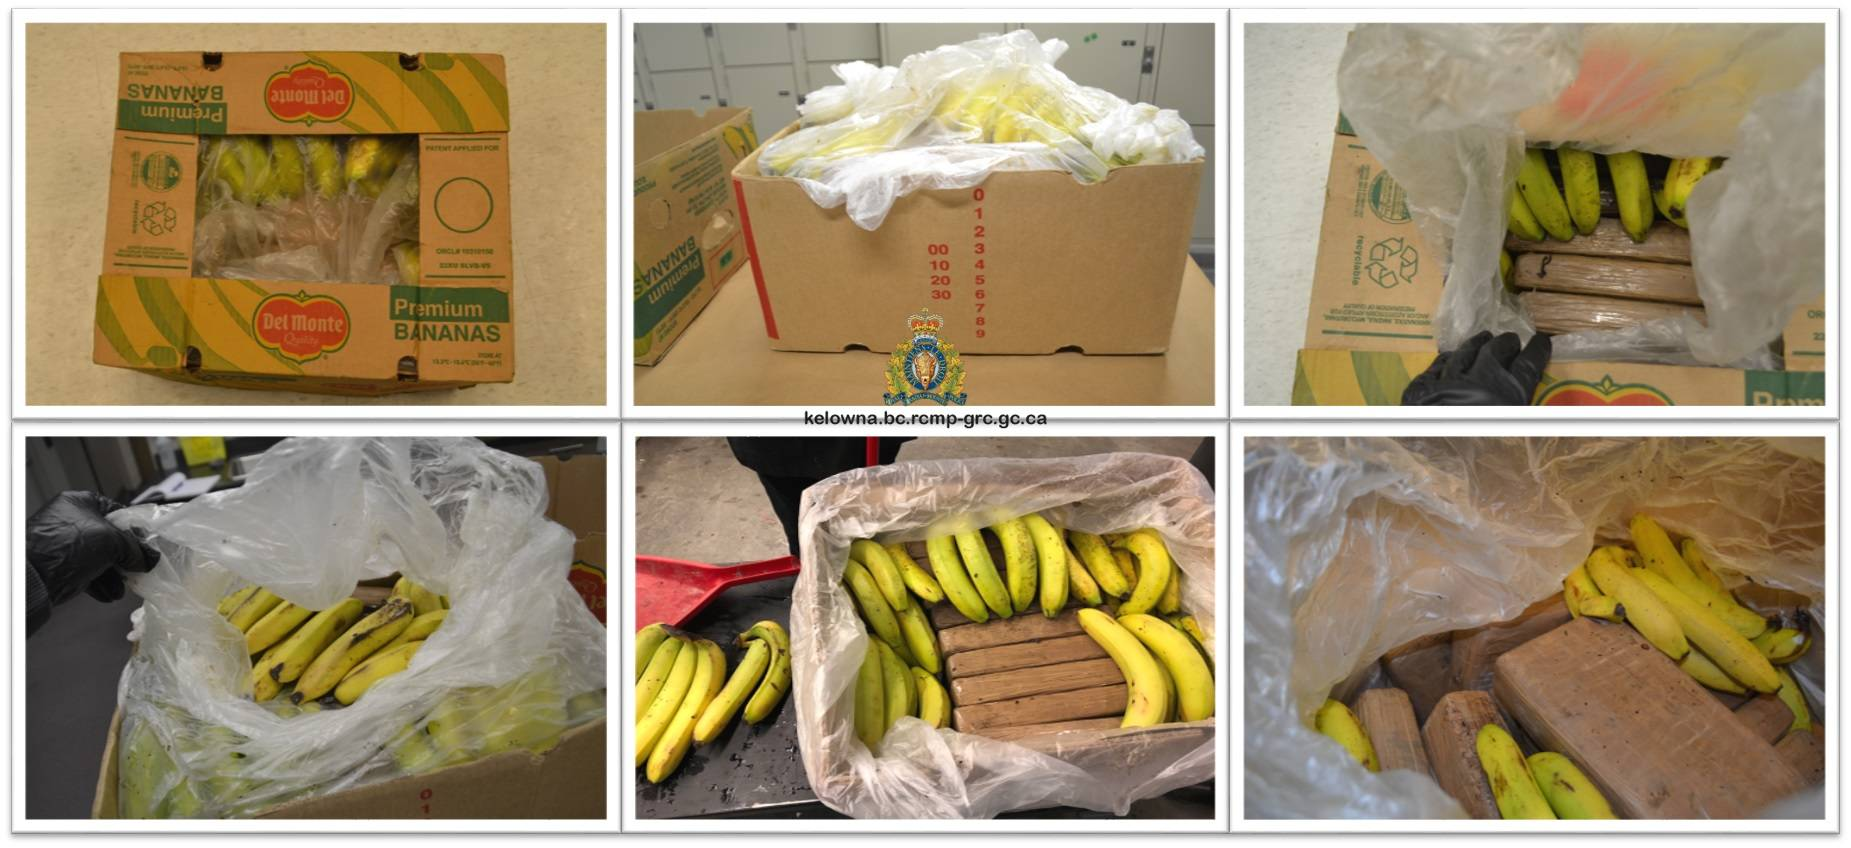 A collage of photos captured by investigators as they examined the banana boxes. (RCMP photo)